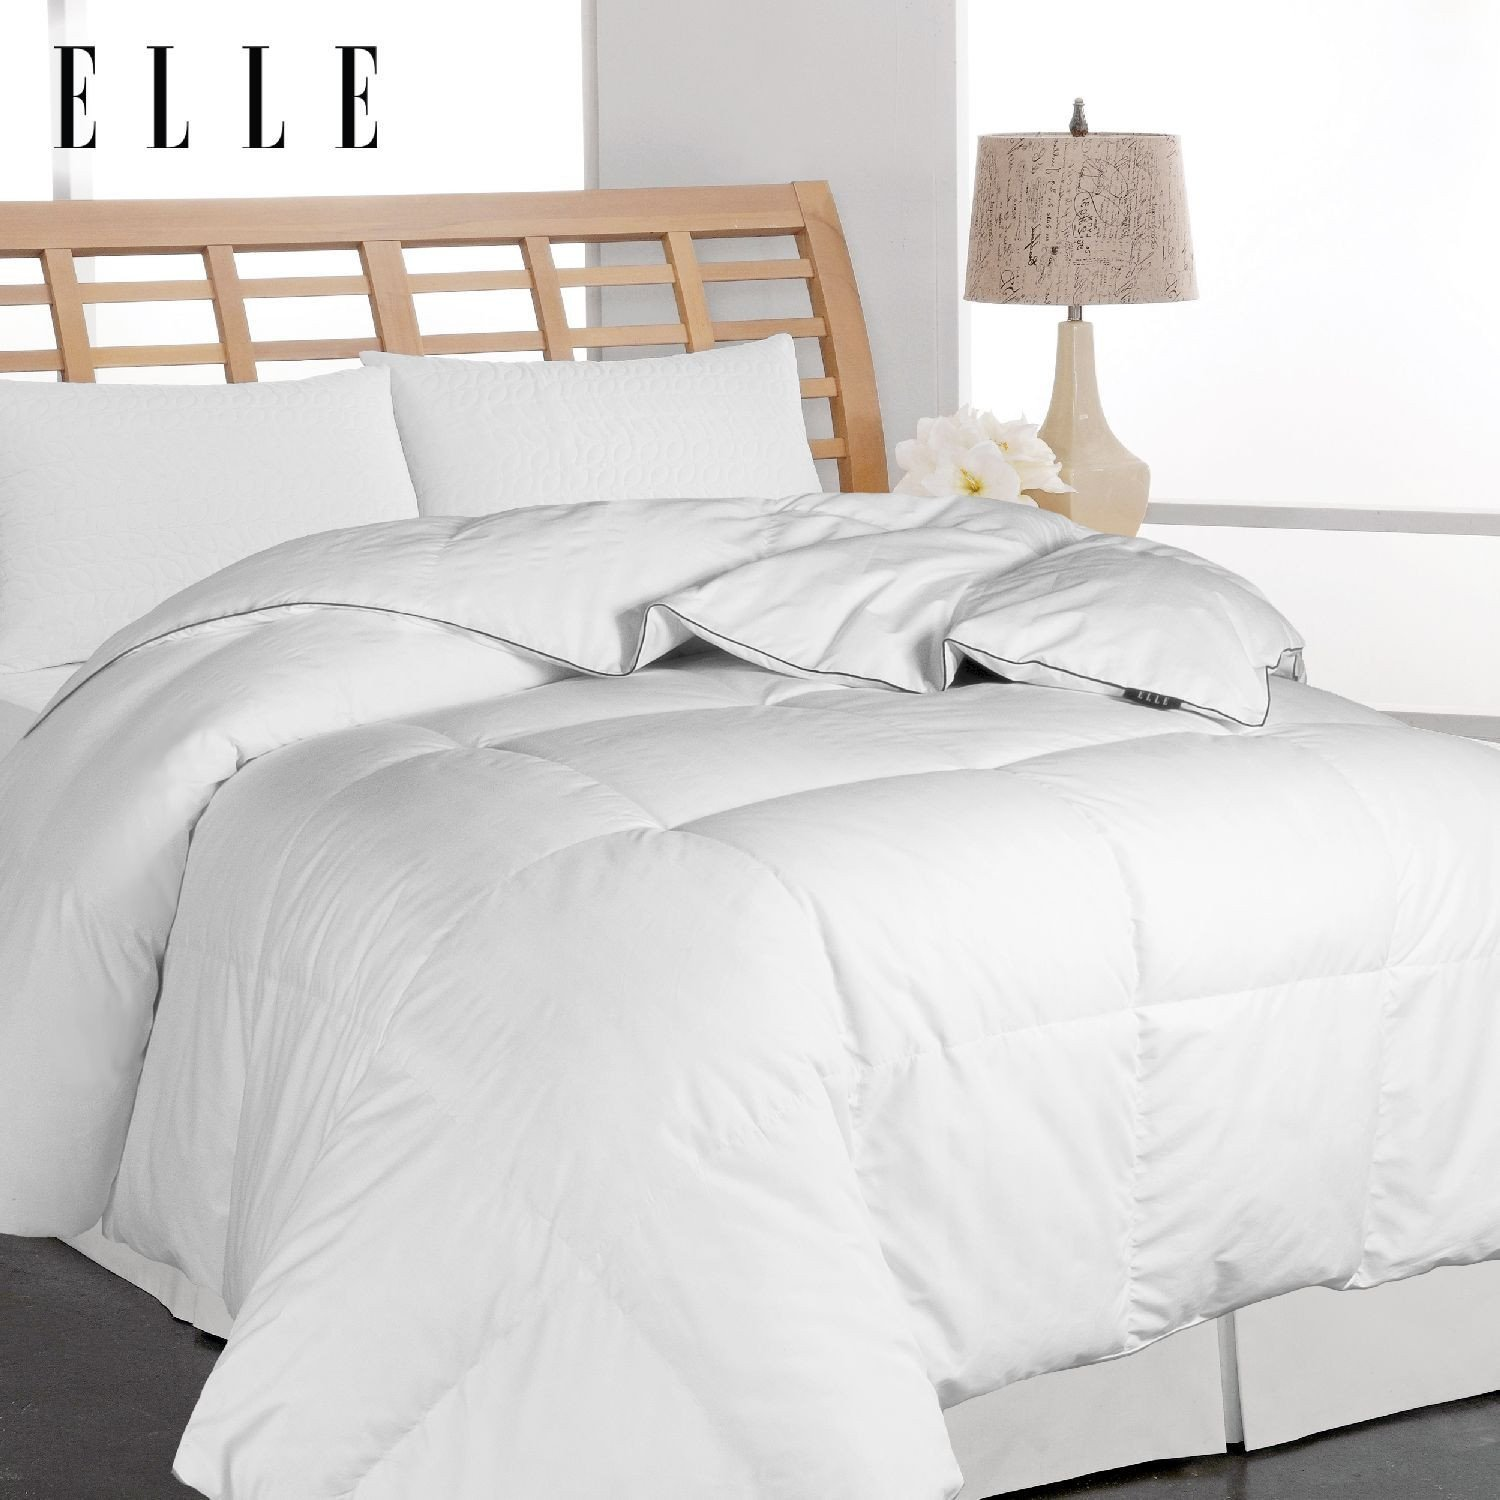 blue discount prices online for queen everyday pin buy com overstock teen bedding bed from